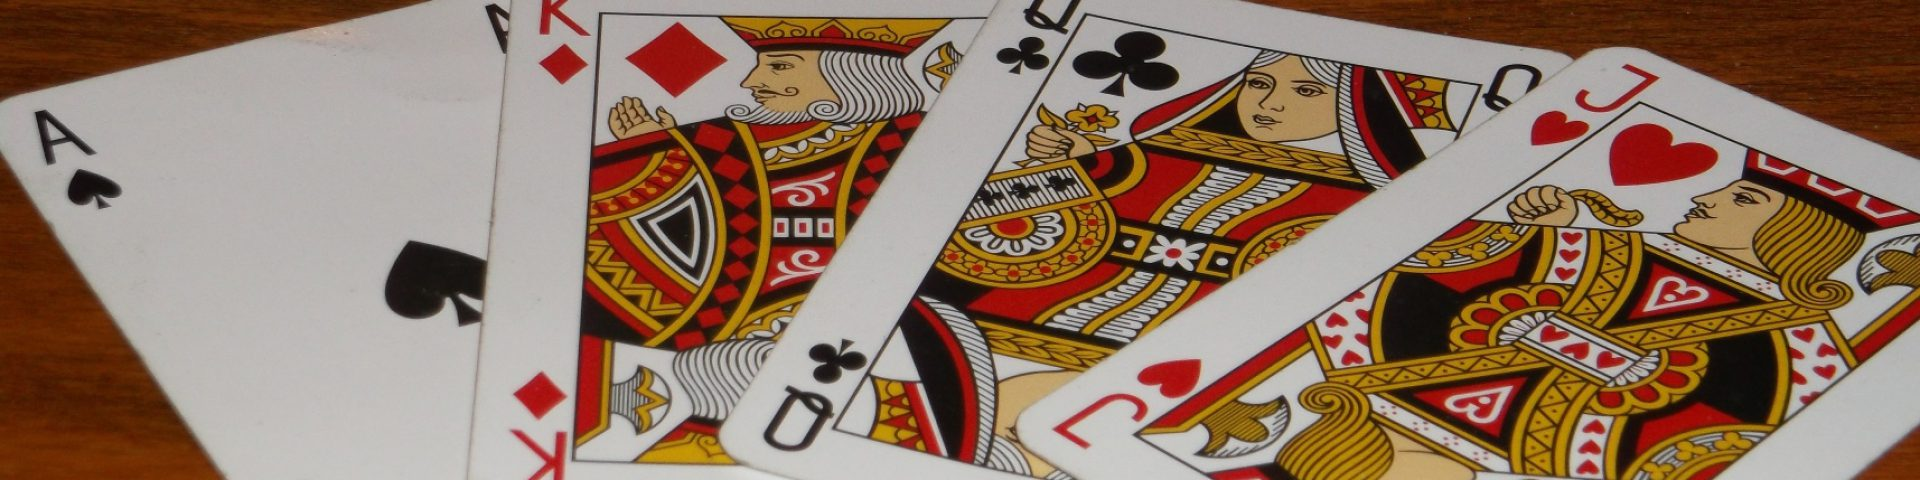 cropped-Karty_do_gry_._Playing_card.jpg